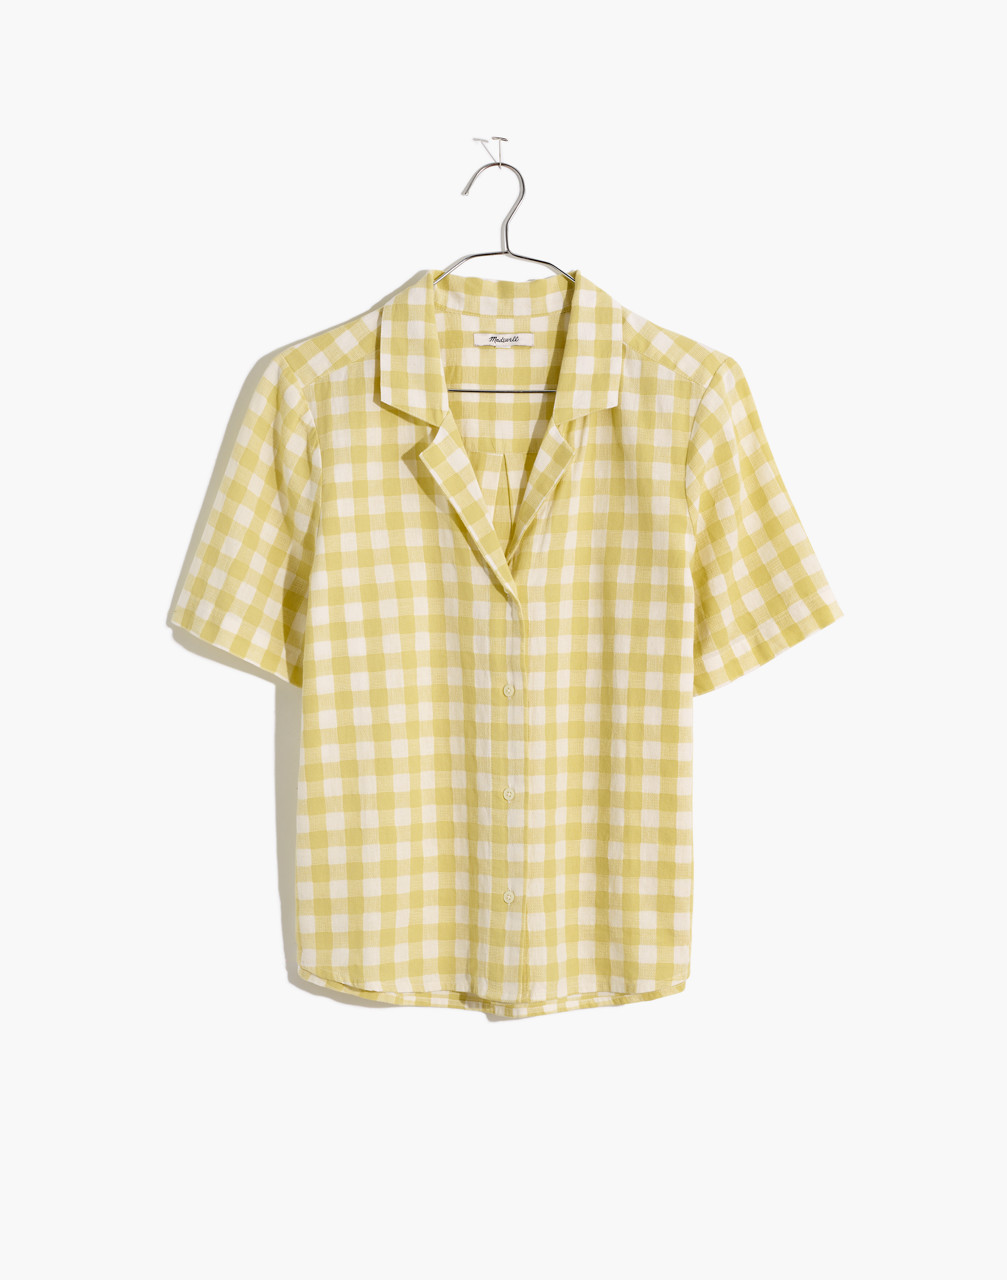 1940s Blouses, Shirts and Tops Fashion History Linen-Blend Boxy Camp Shirt in Gingham Check $49.99 AT vintagedancer.com